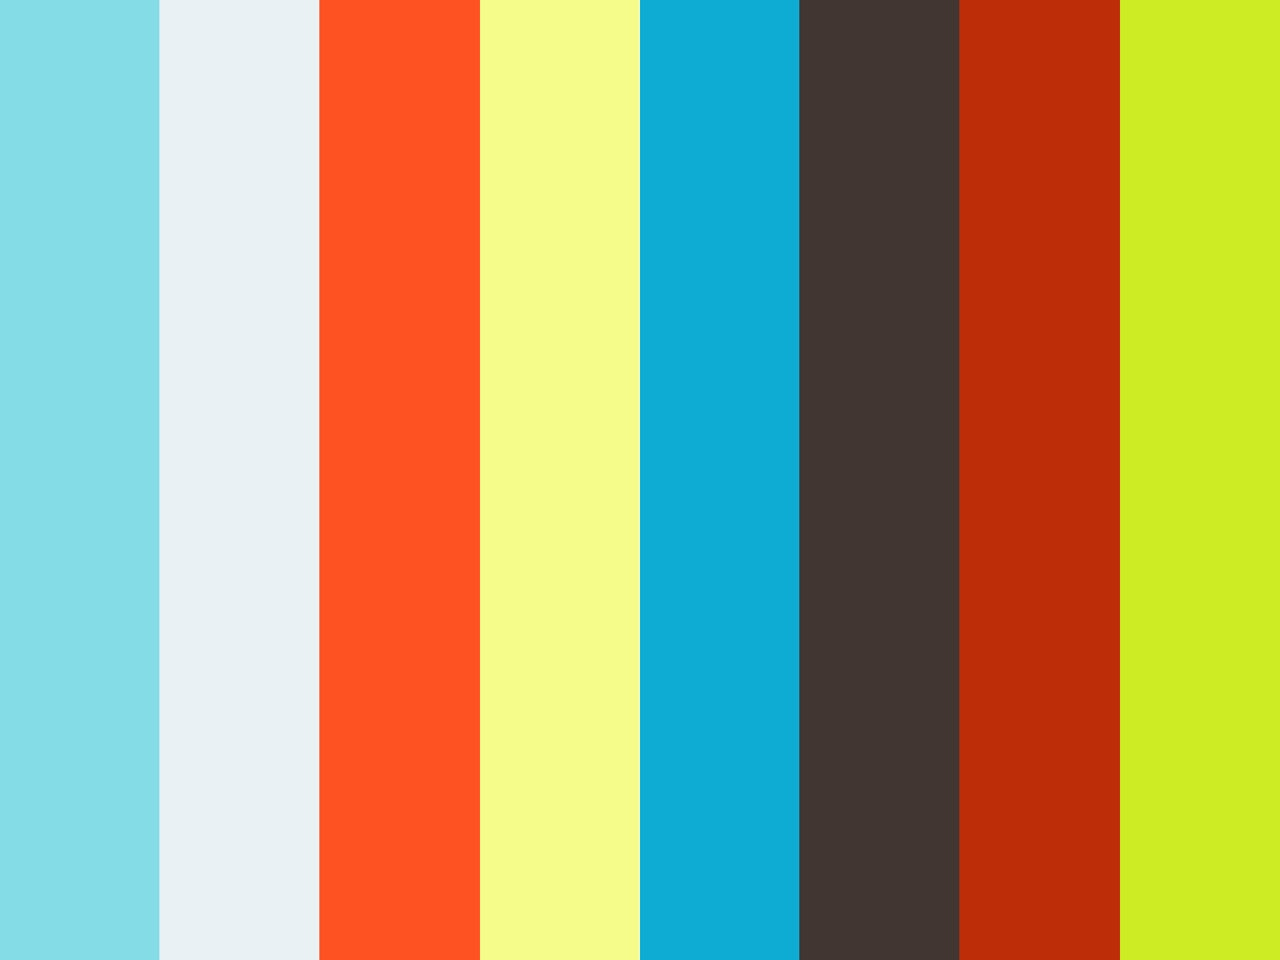 Powderday